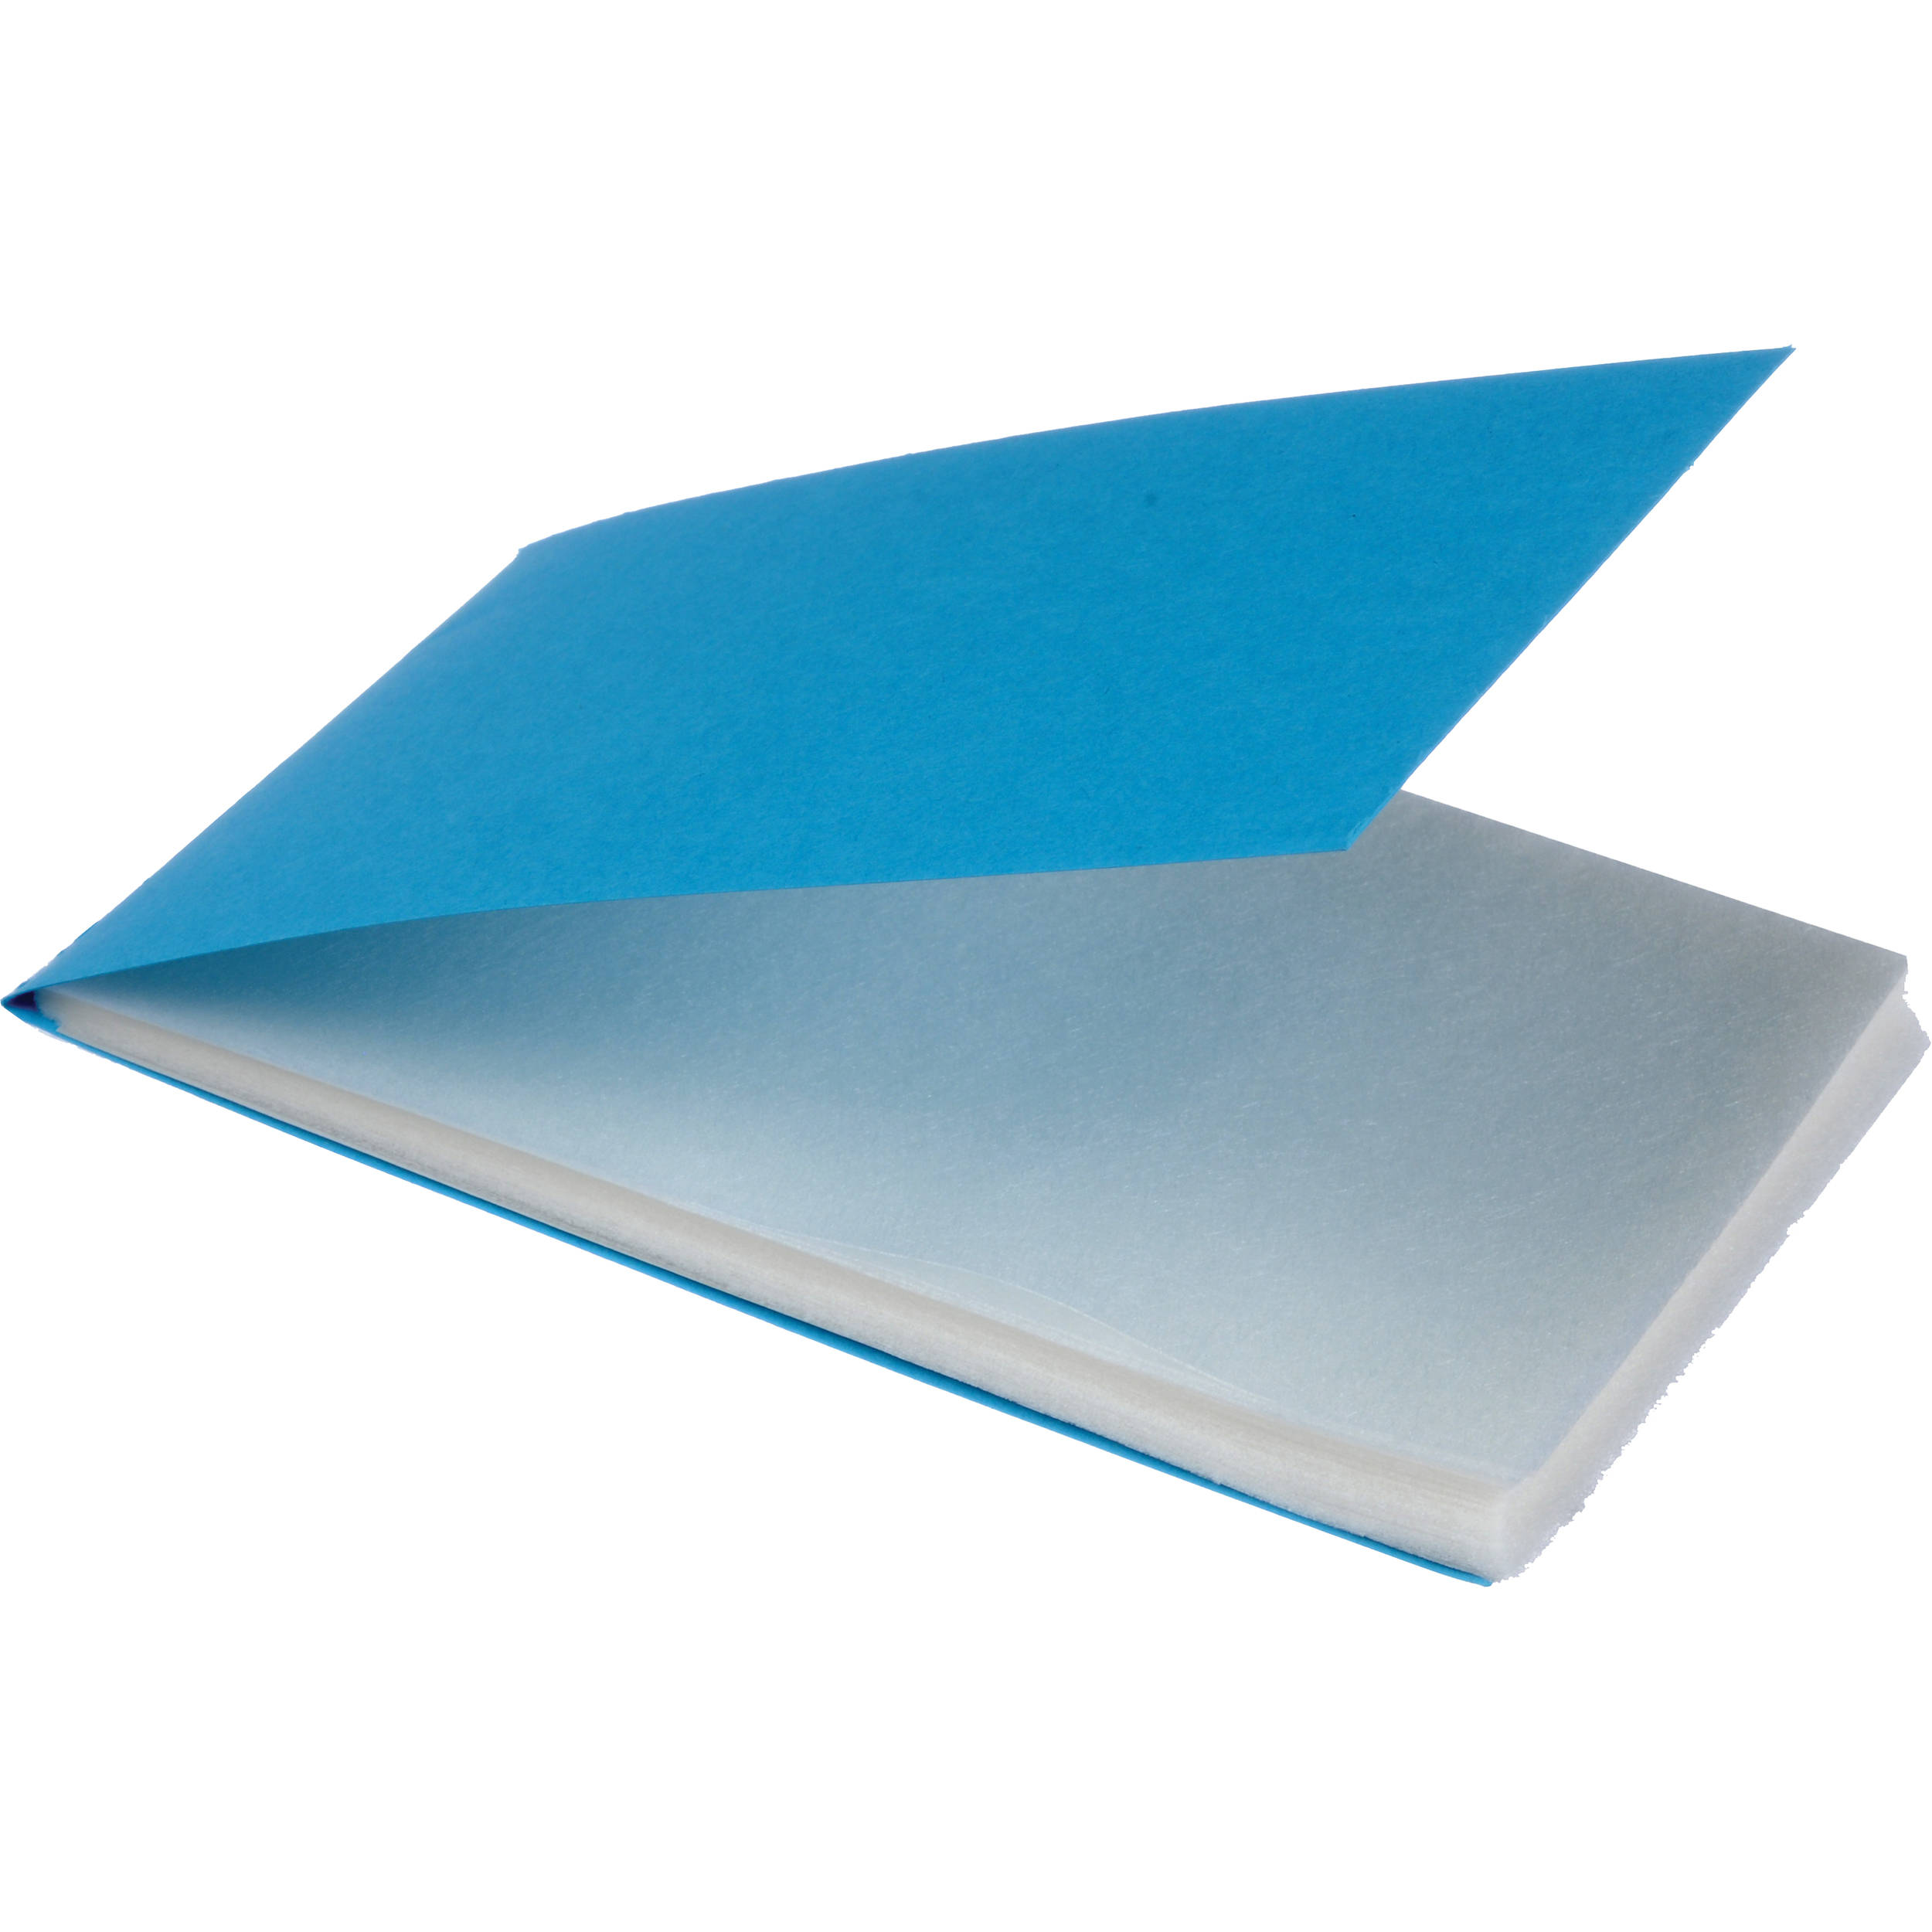 Tiffen Lens Cleaning Paper  50 Single Sheets. Tiffen Lens Cleaning Paper  50 Single Sheets  EK1546027T 1 B H